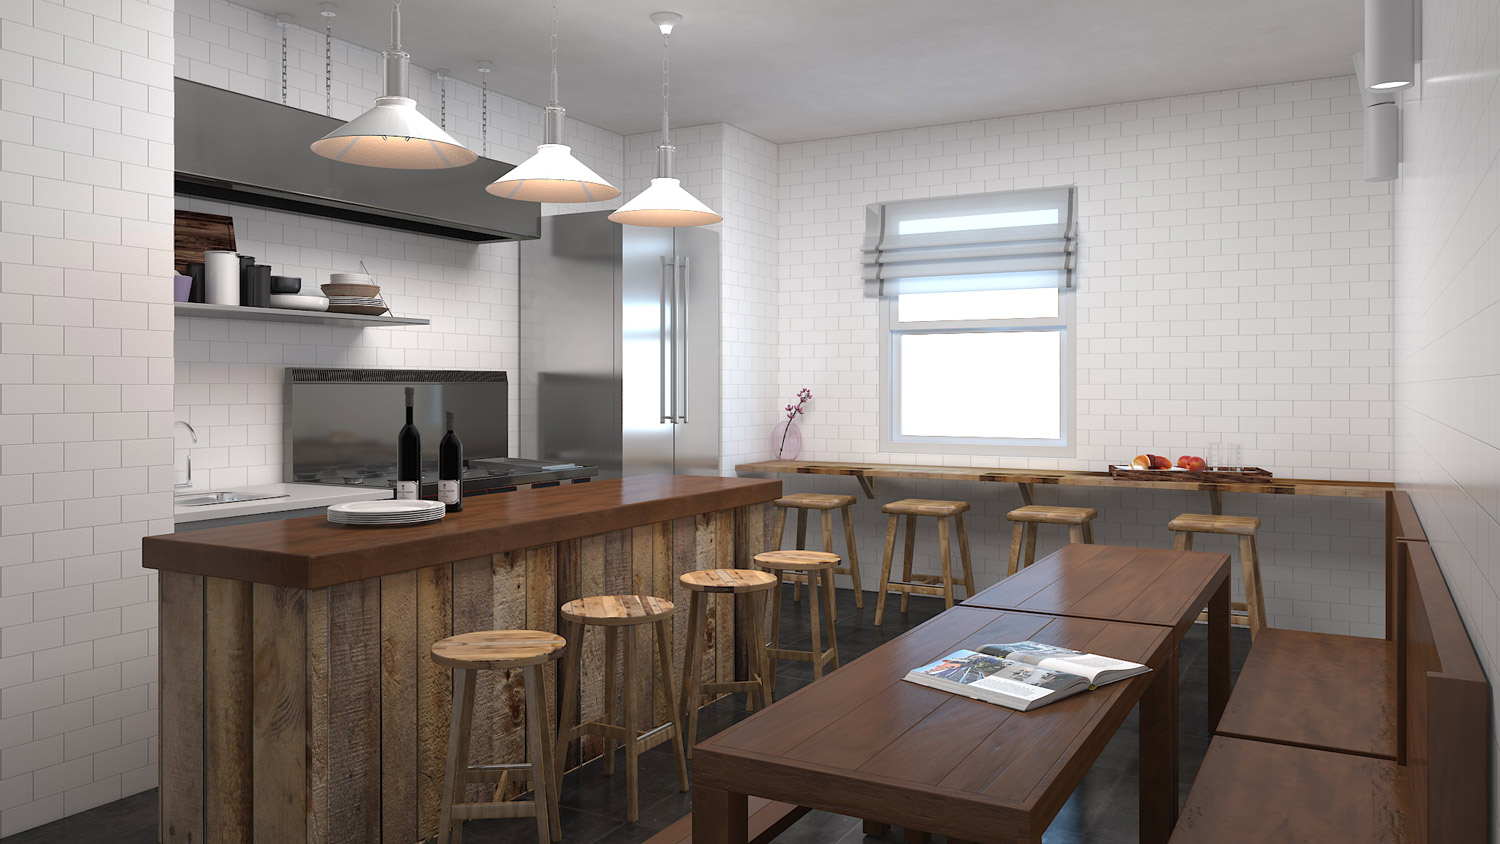 Kitchen Visualization 3D model - For Jonathan Small,USA